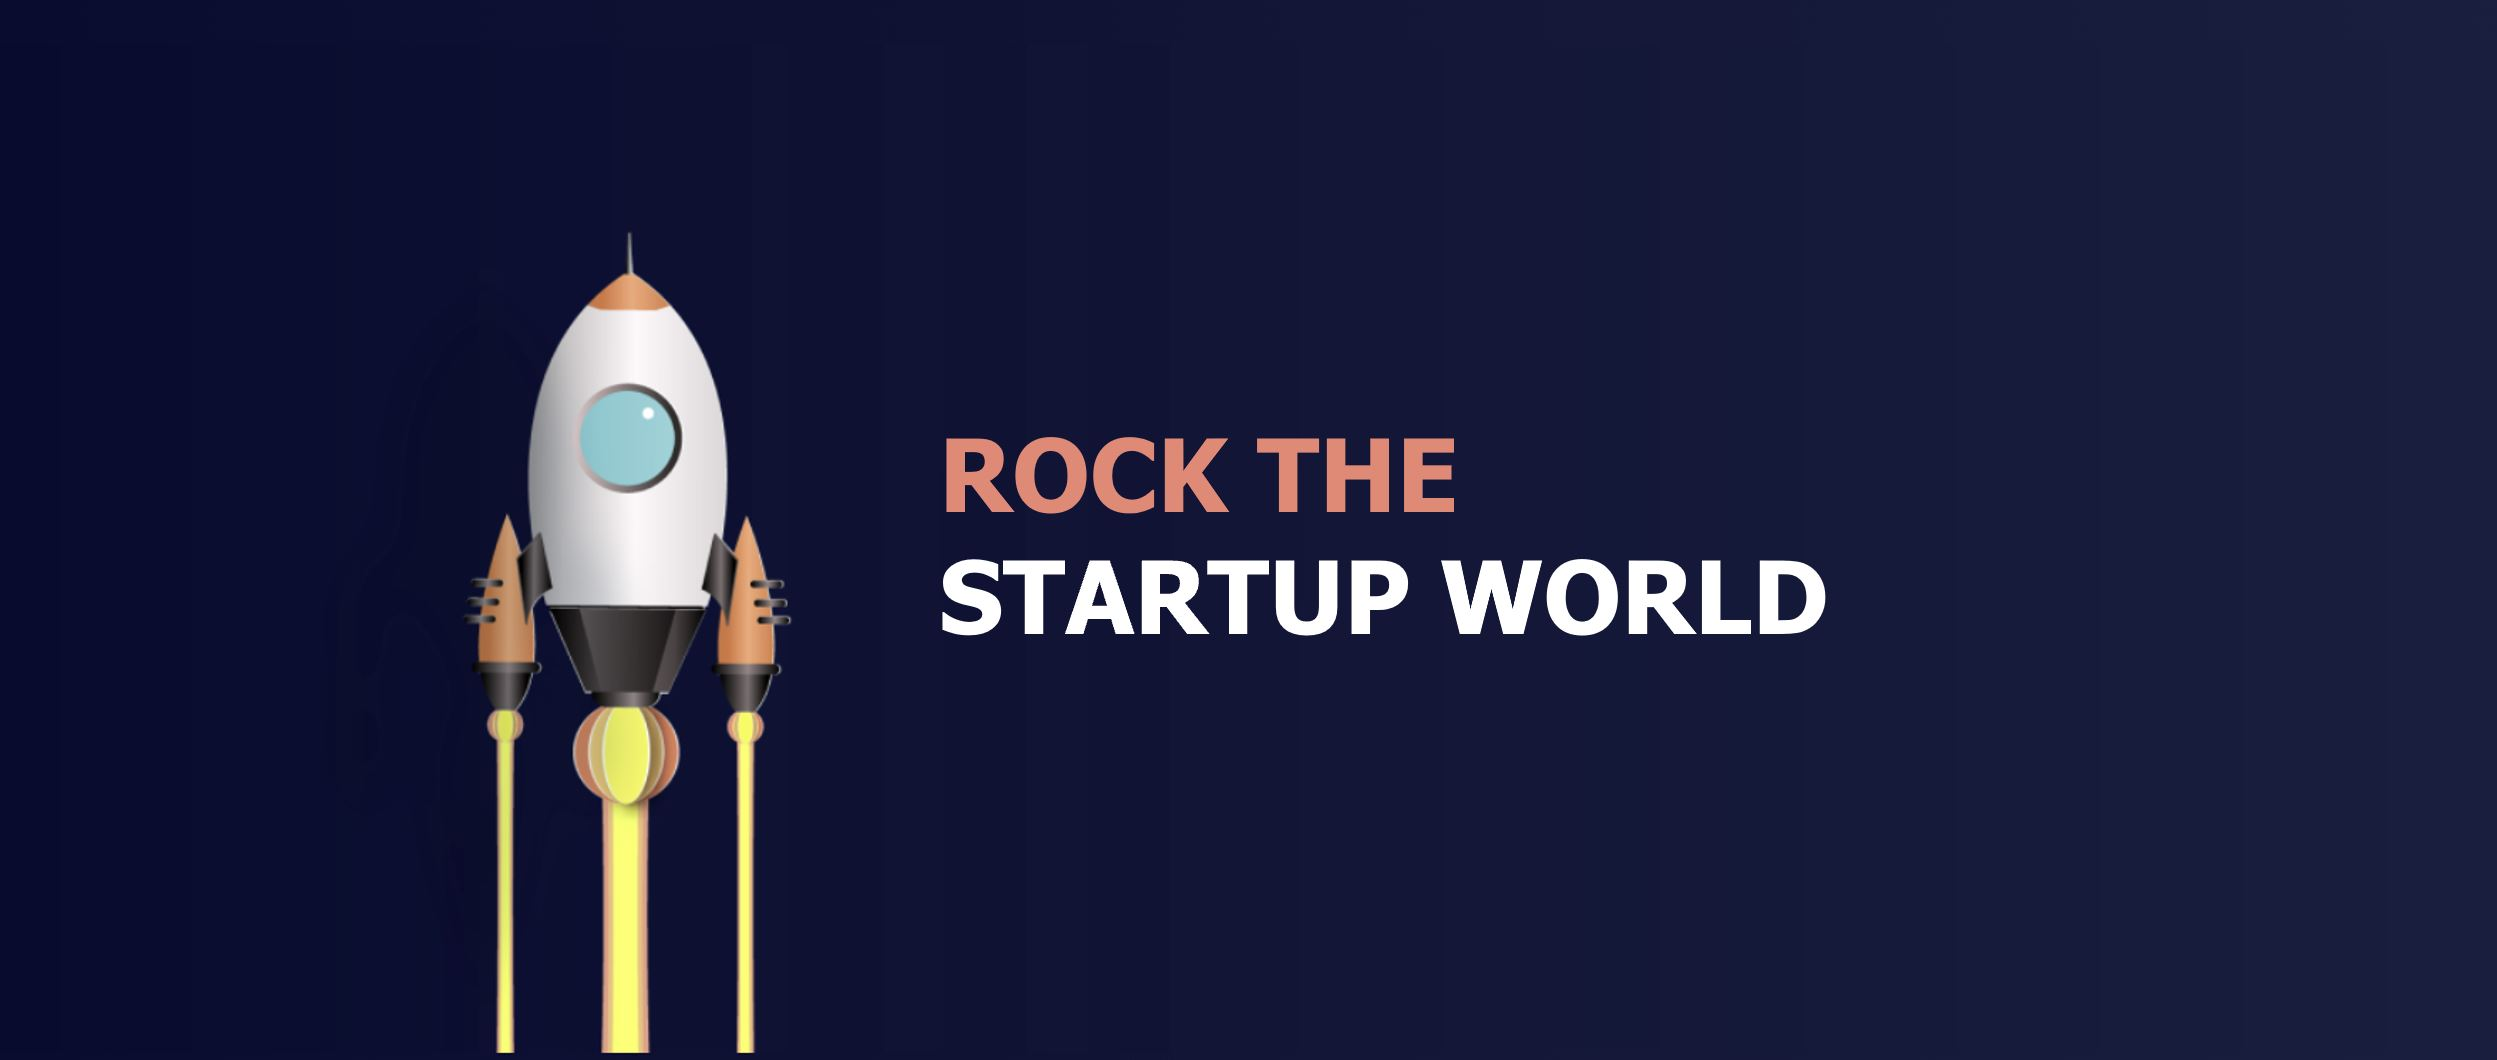 Rock the startup world-1